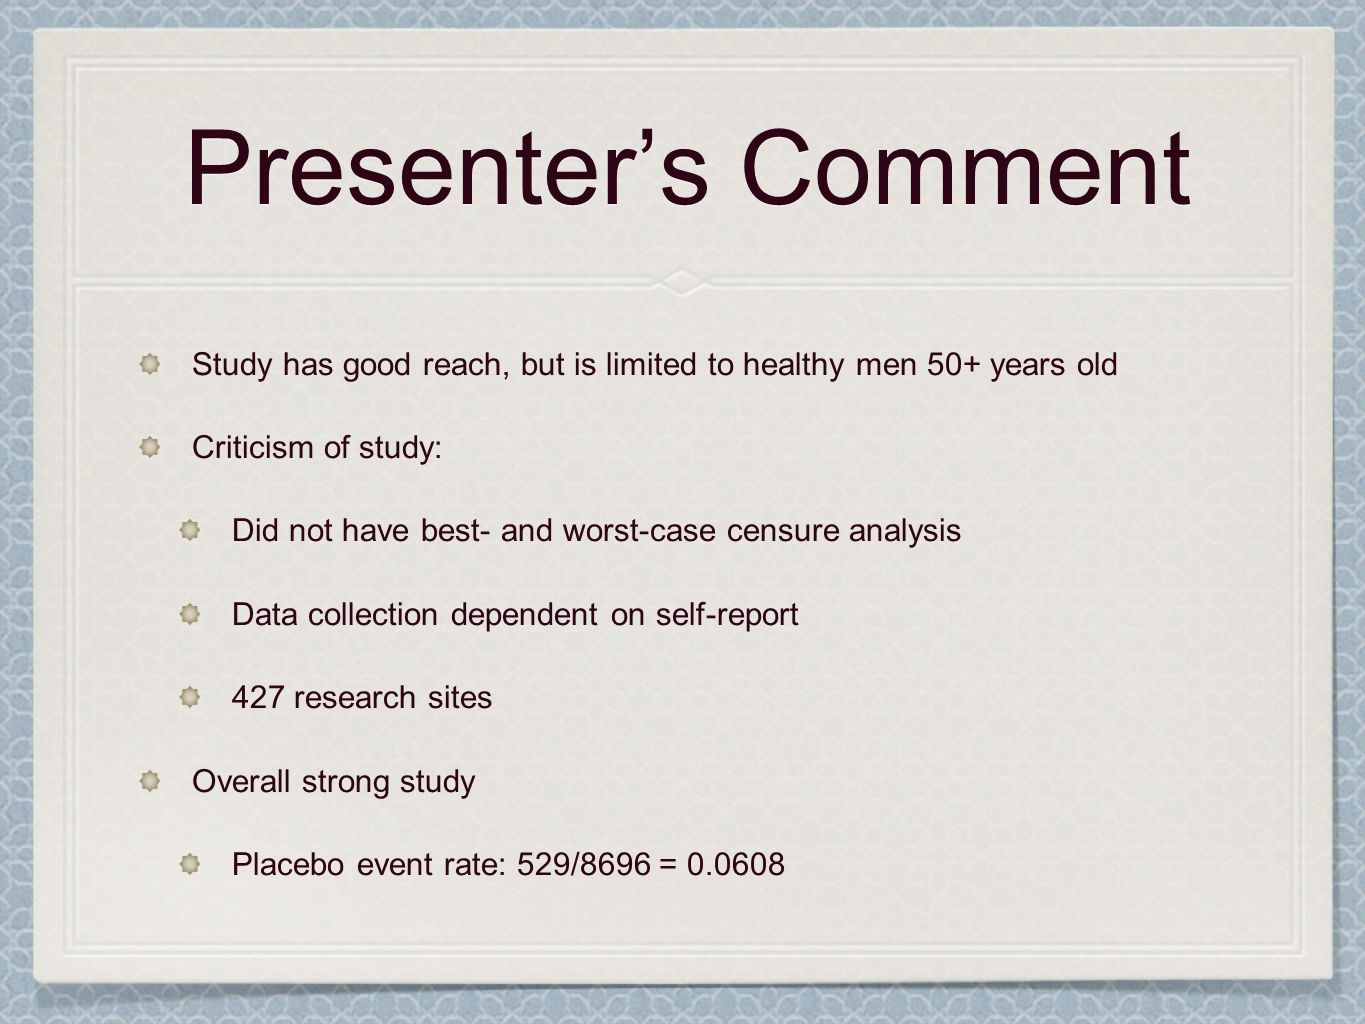 Presenter's Comment Study has good reach, but is limited to healthy men 50+ years old. Criticism of study: